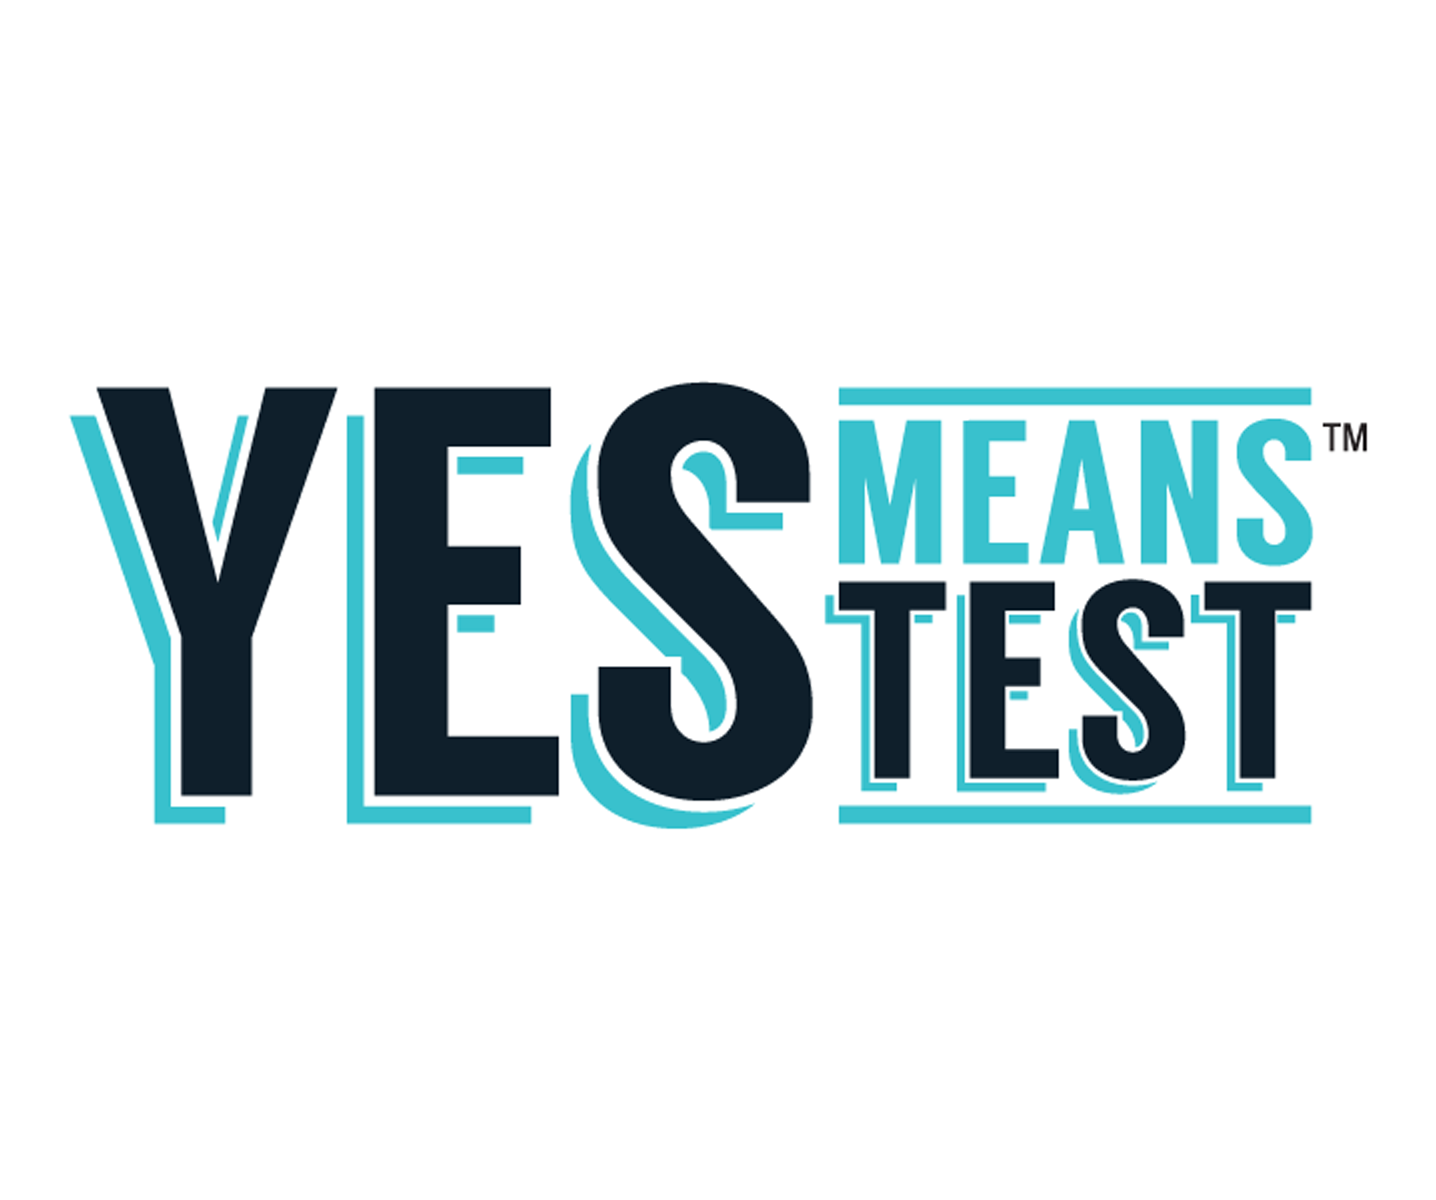 Yes means test get the facts about std testing stopboris Image collections